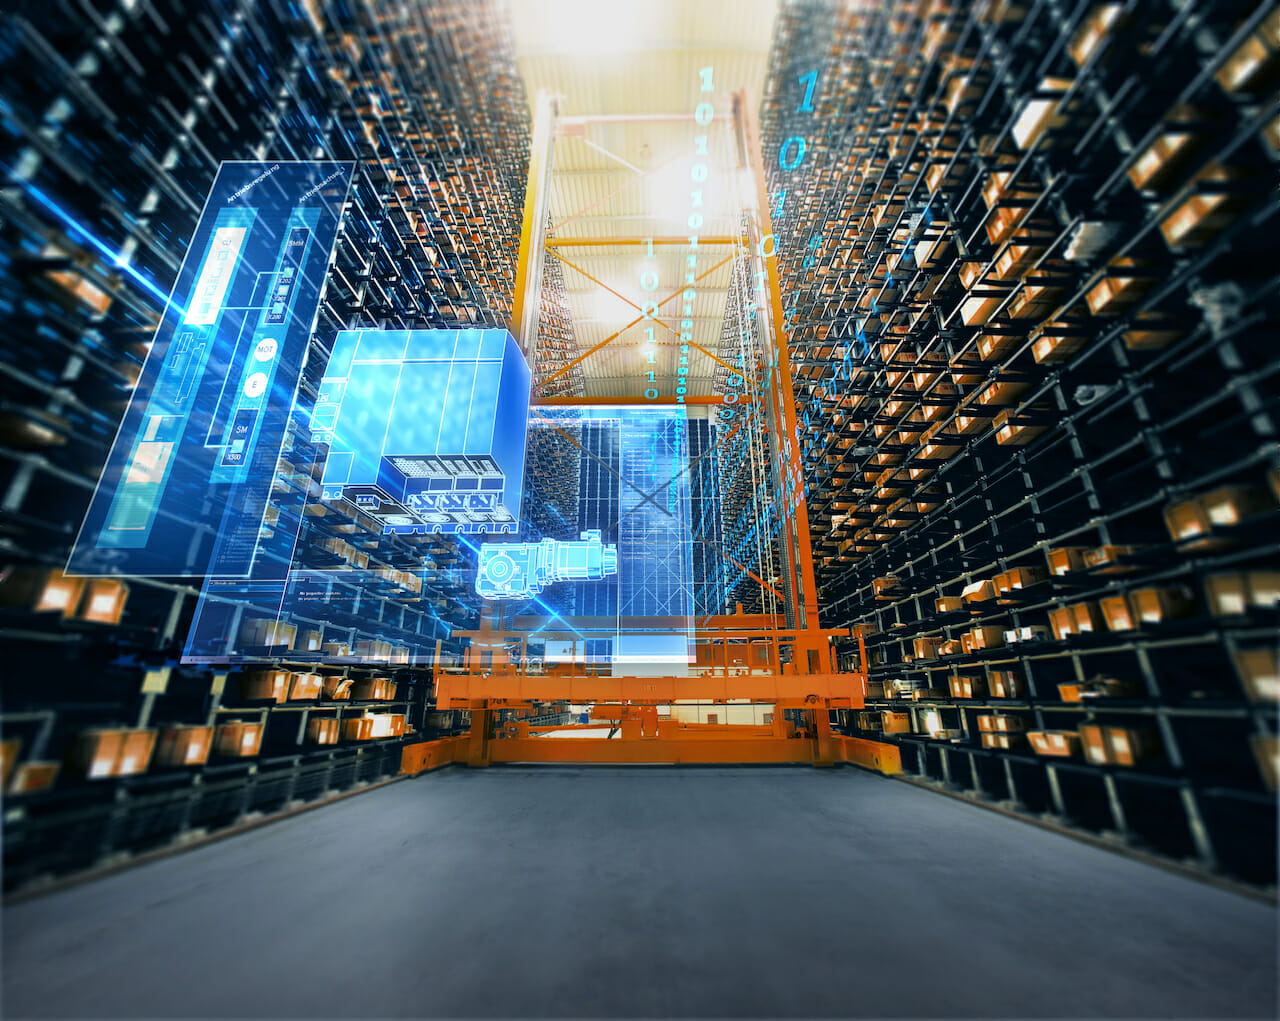 How to speed-up security deployments in industrial organizations